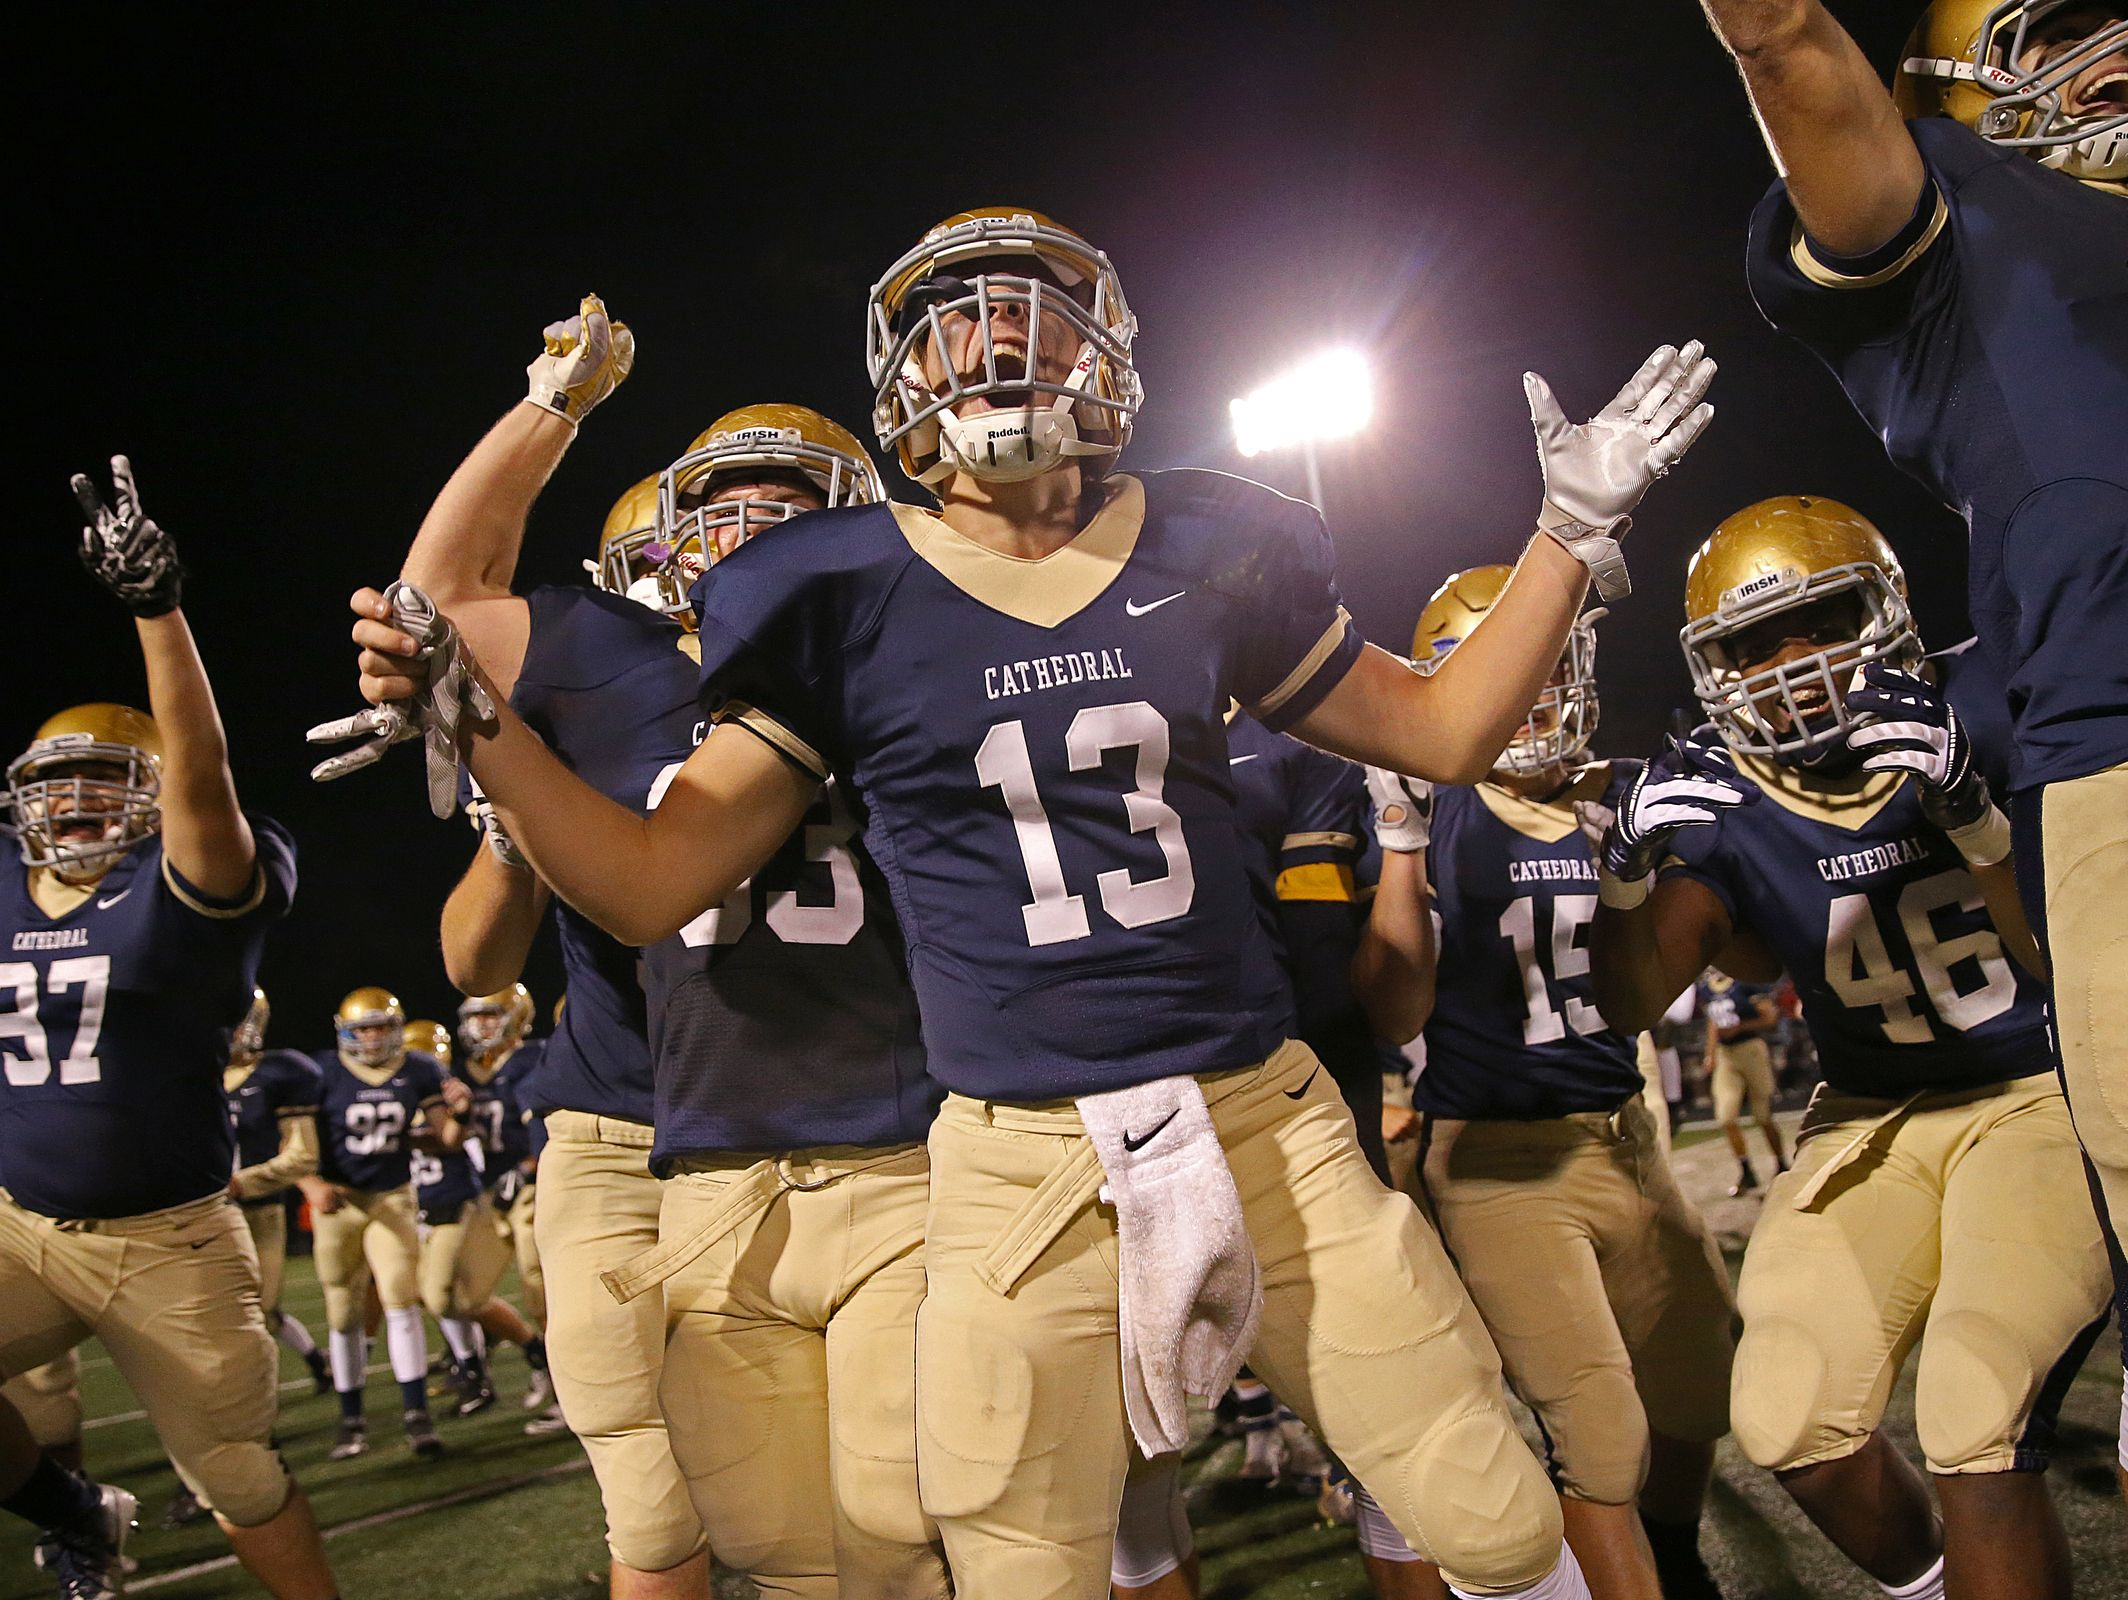 The Cathedral Fighting Irish celebrate after winning sectional finals against Lawrence Central in overtime, 20-17, at Arsenal Technical High School, Friday, November 4, 2016.